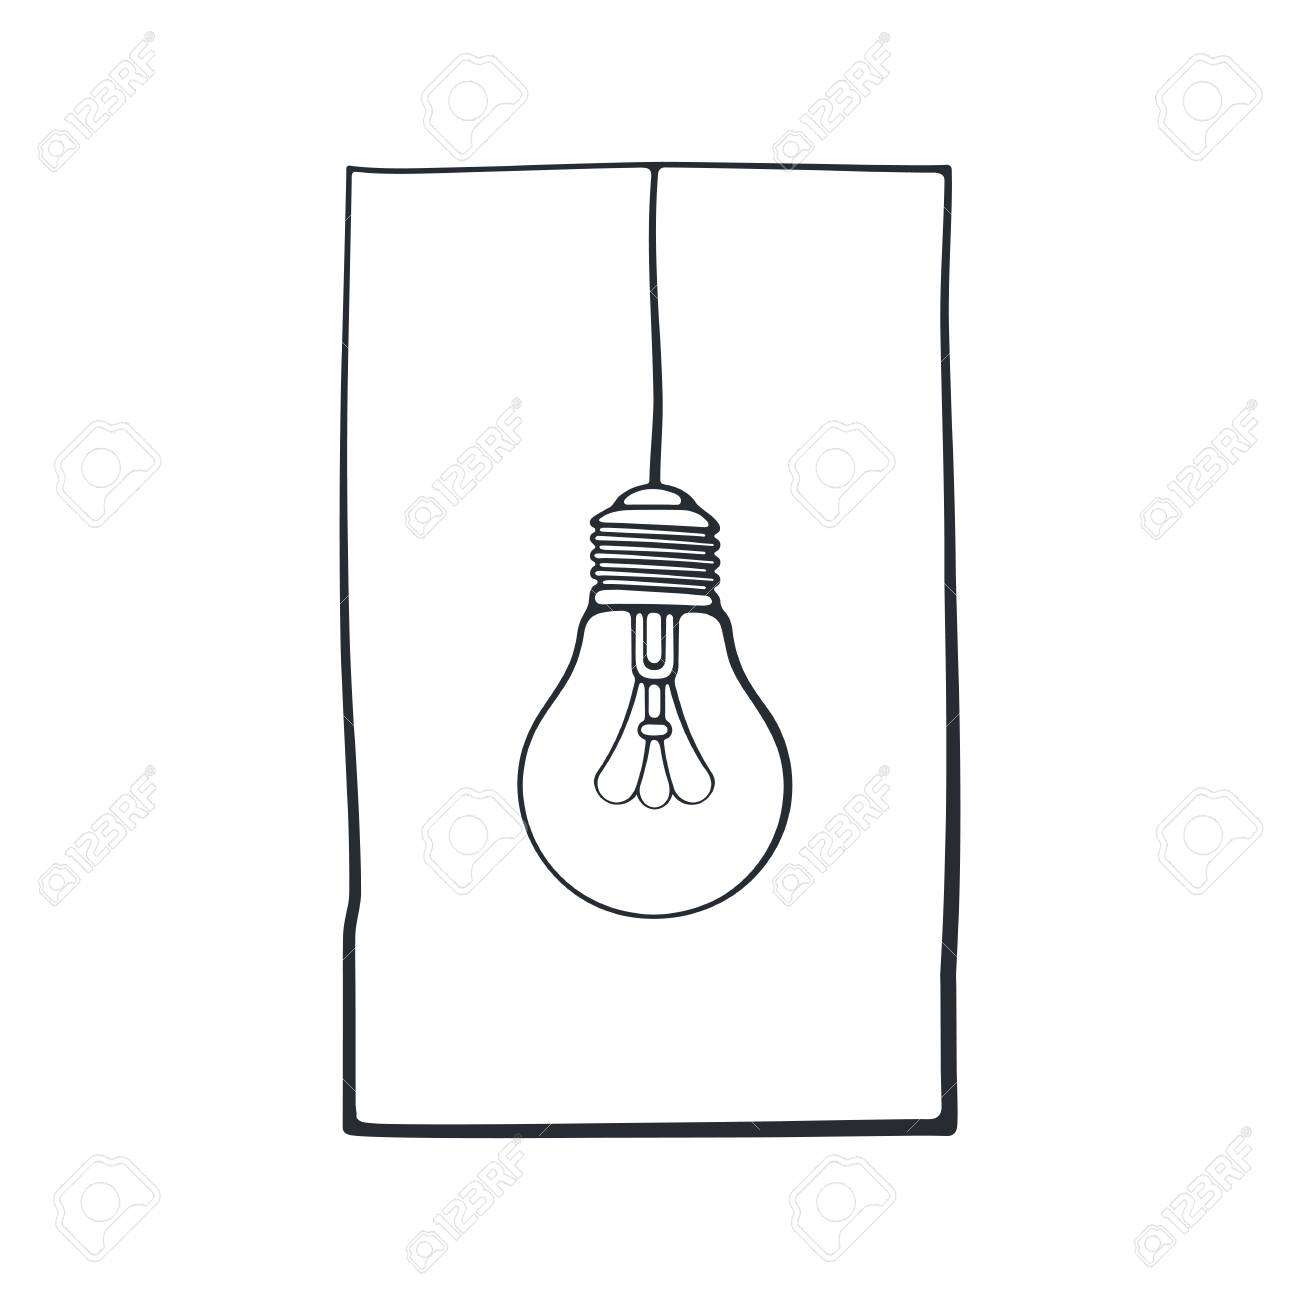 Vector illustration hand drawn doodle of light bulb on the wire hand drawn doodle of light bulb on the wire in a frame biocorpaavc Gallery